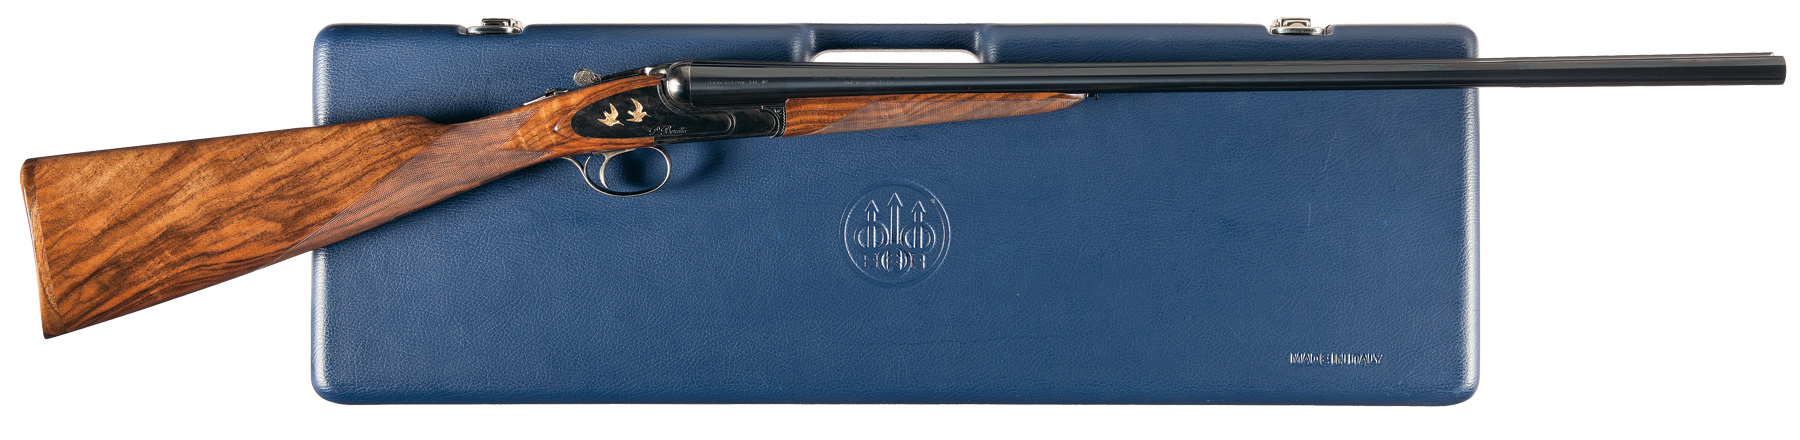 Beretta Silver Hawk 471 EL with English style straight stock and splinter fore-end. (Picture courtesy rockislandauction.com)